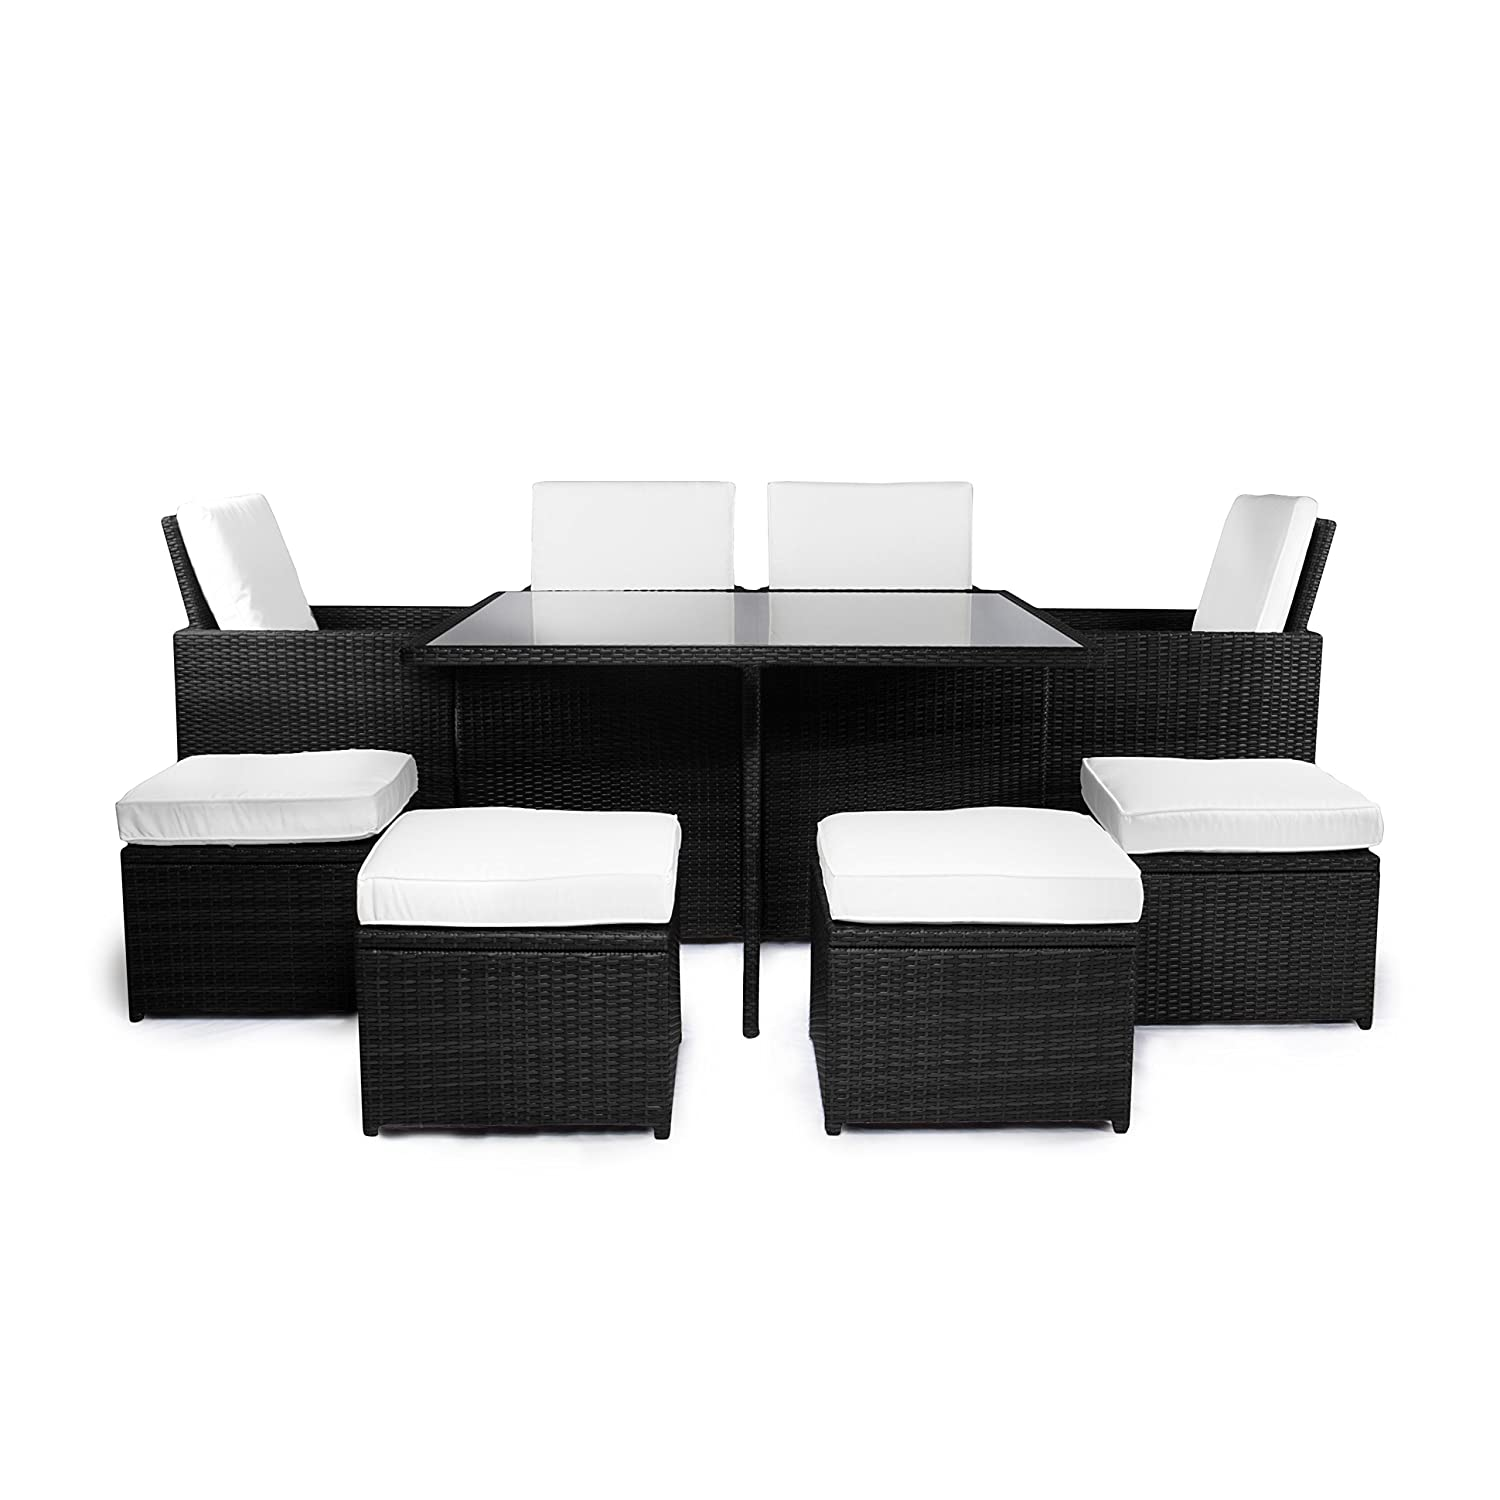 vanage gartenm bel set sydney rattan optik polyrattan lounge m bel f r garten balkon. Black Bedroom Furniture Sets. Home Design Ideas